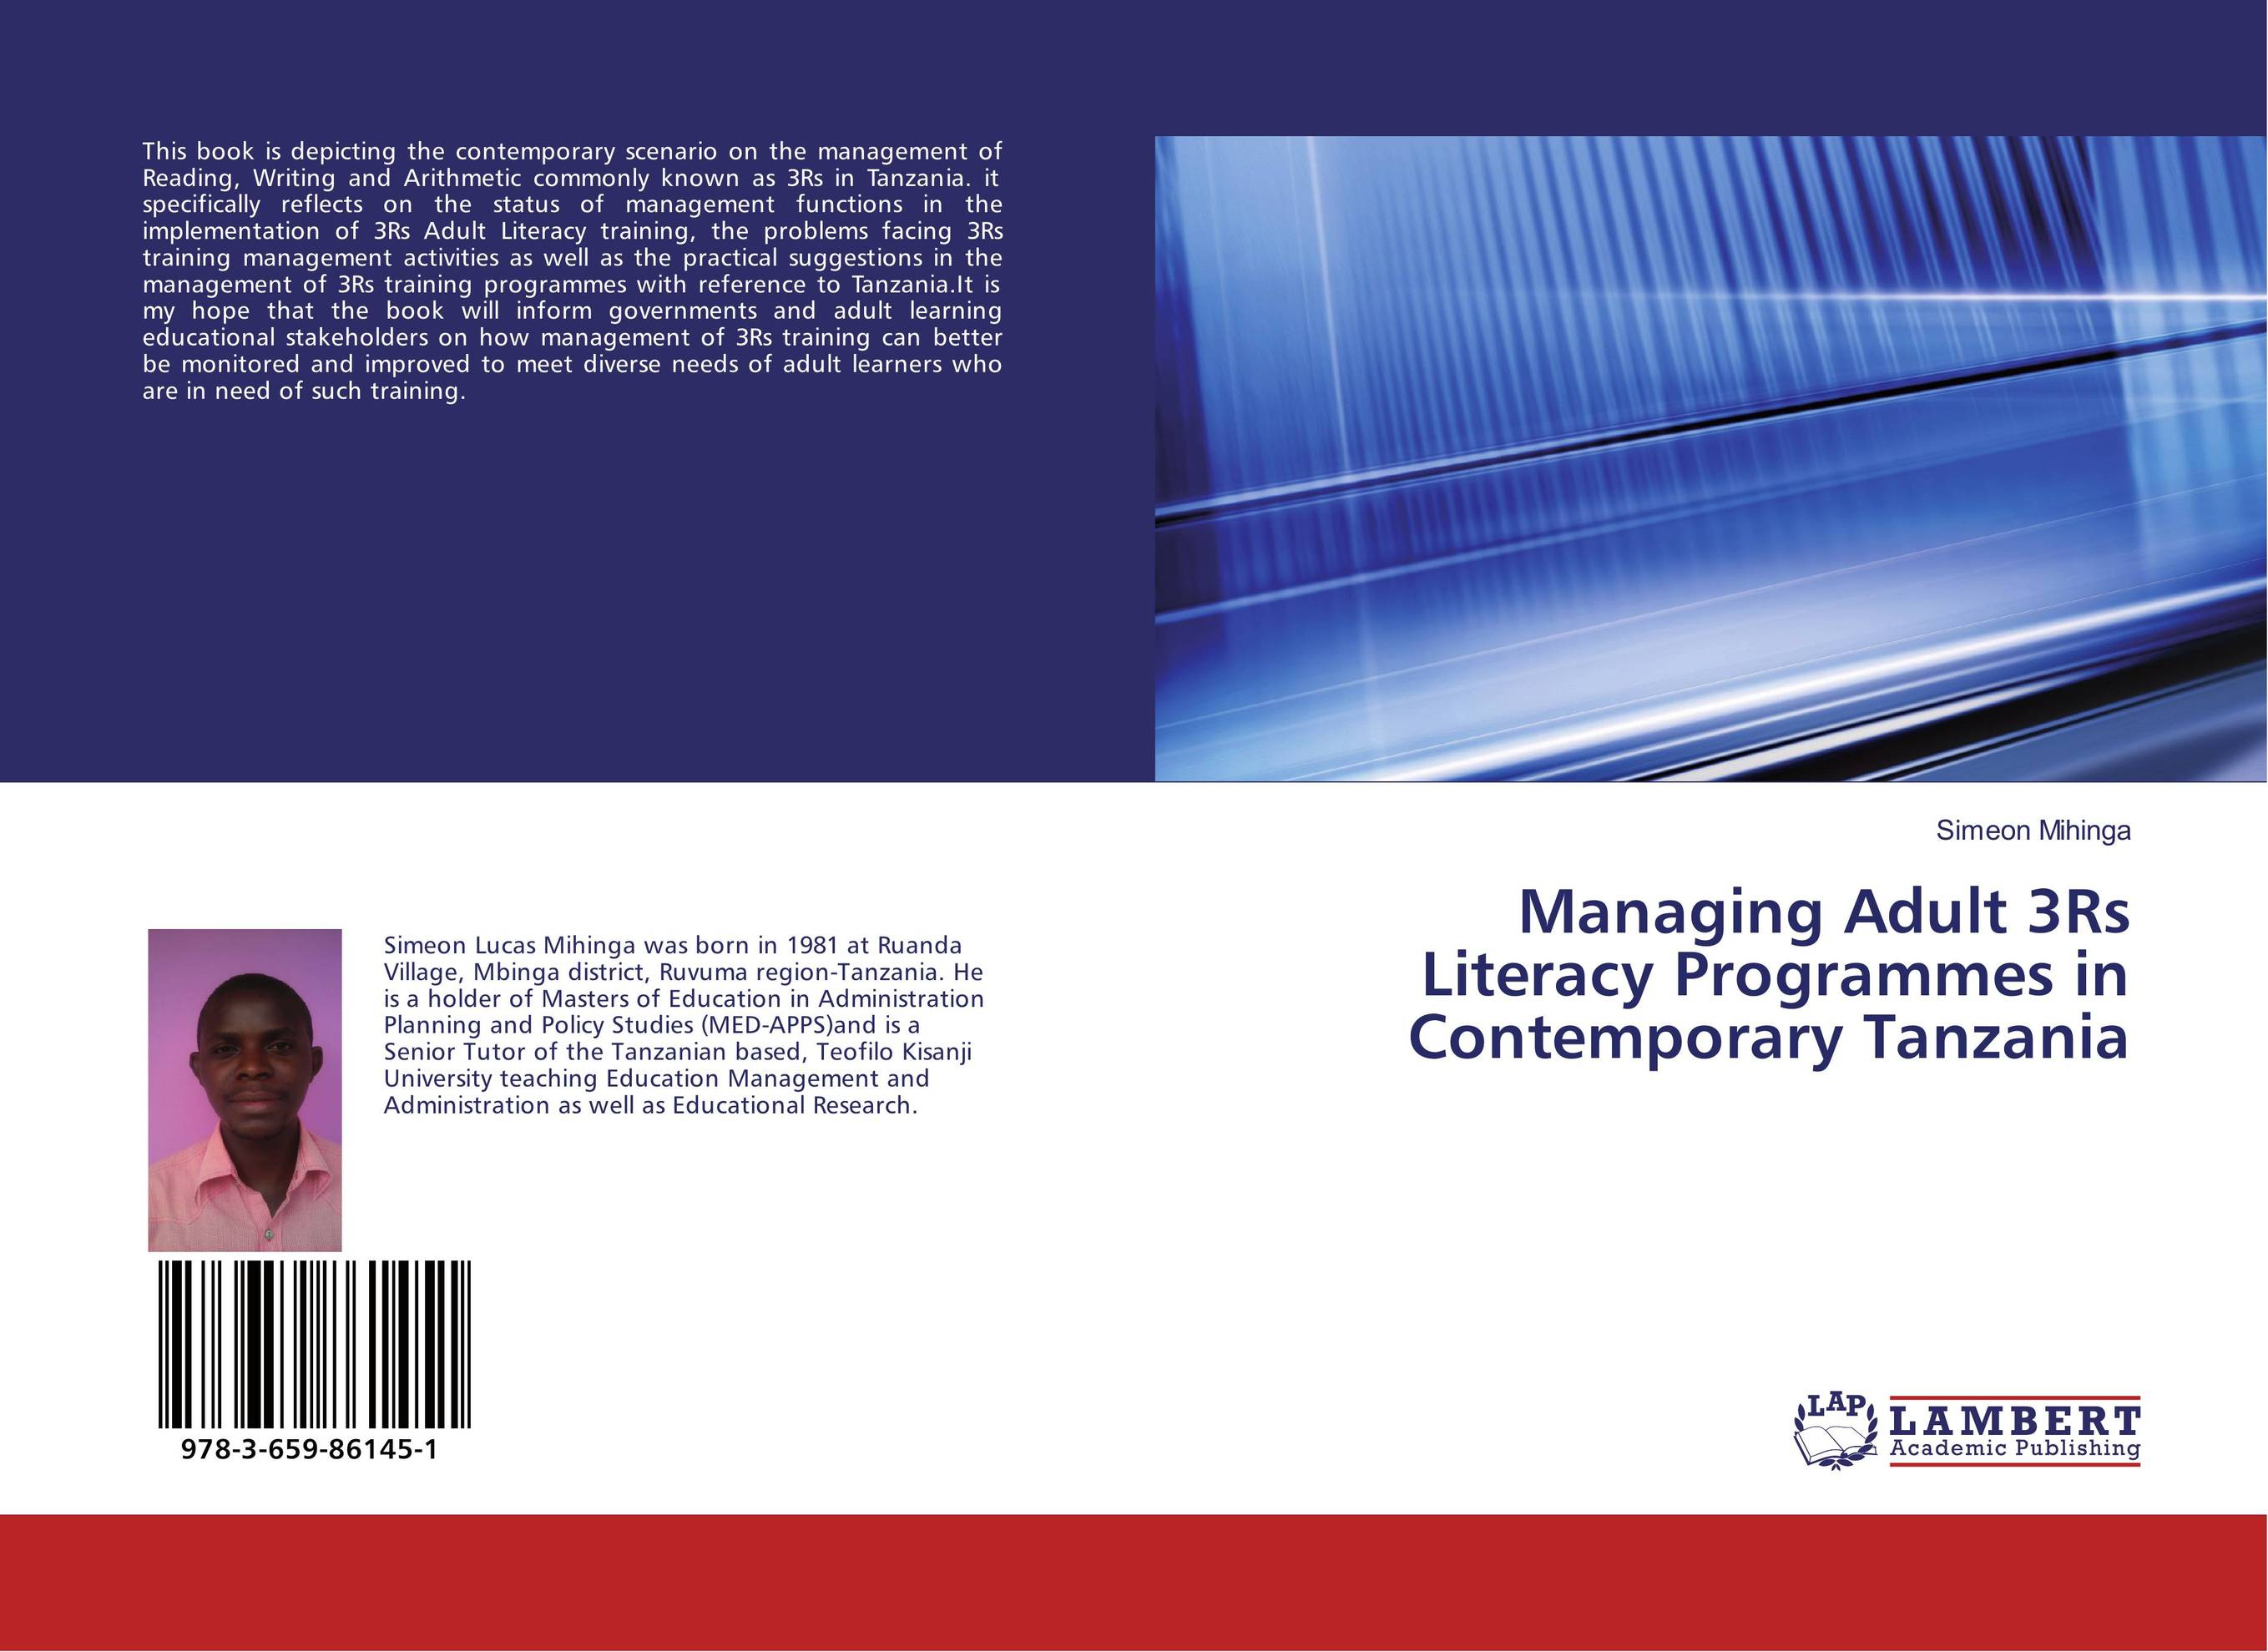 Managing Adult 3Rs Literacy Programmes in Contemporary Tanzania